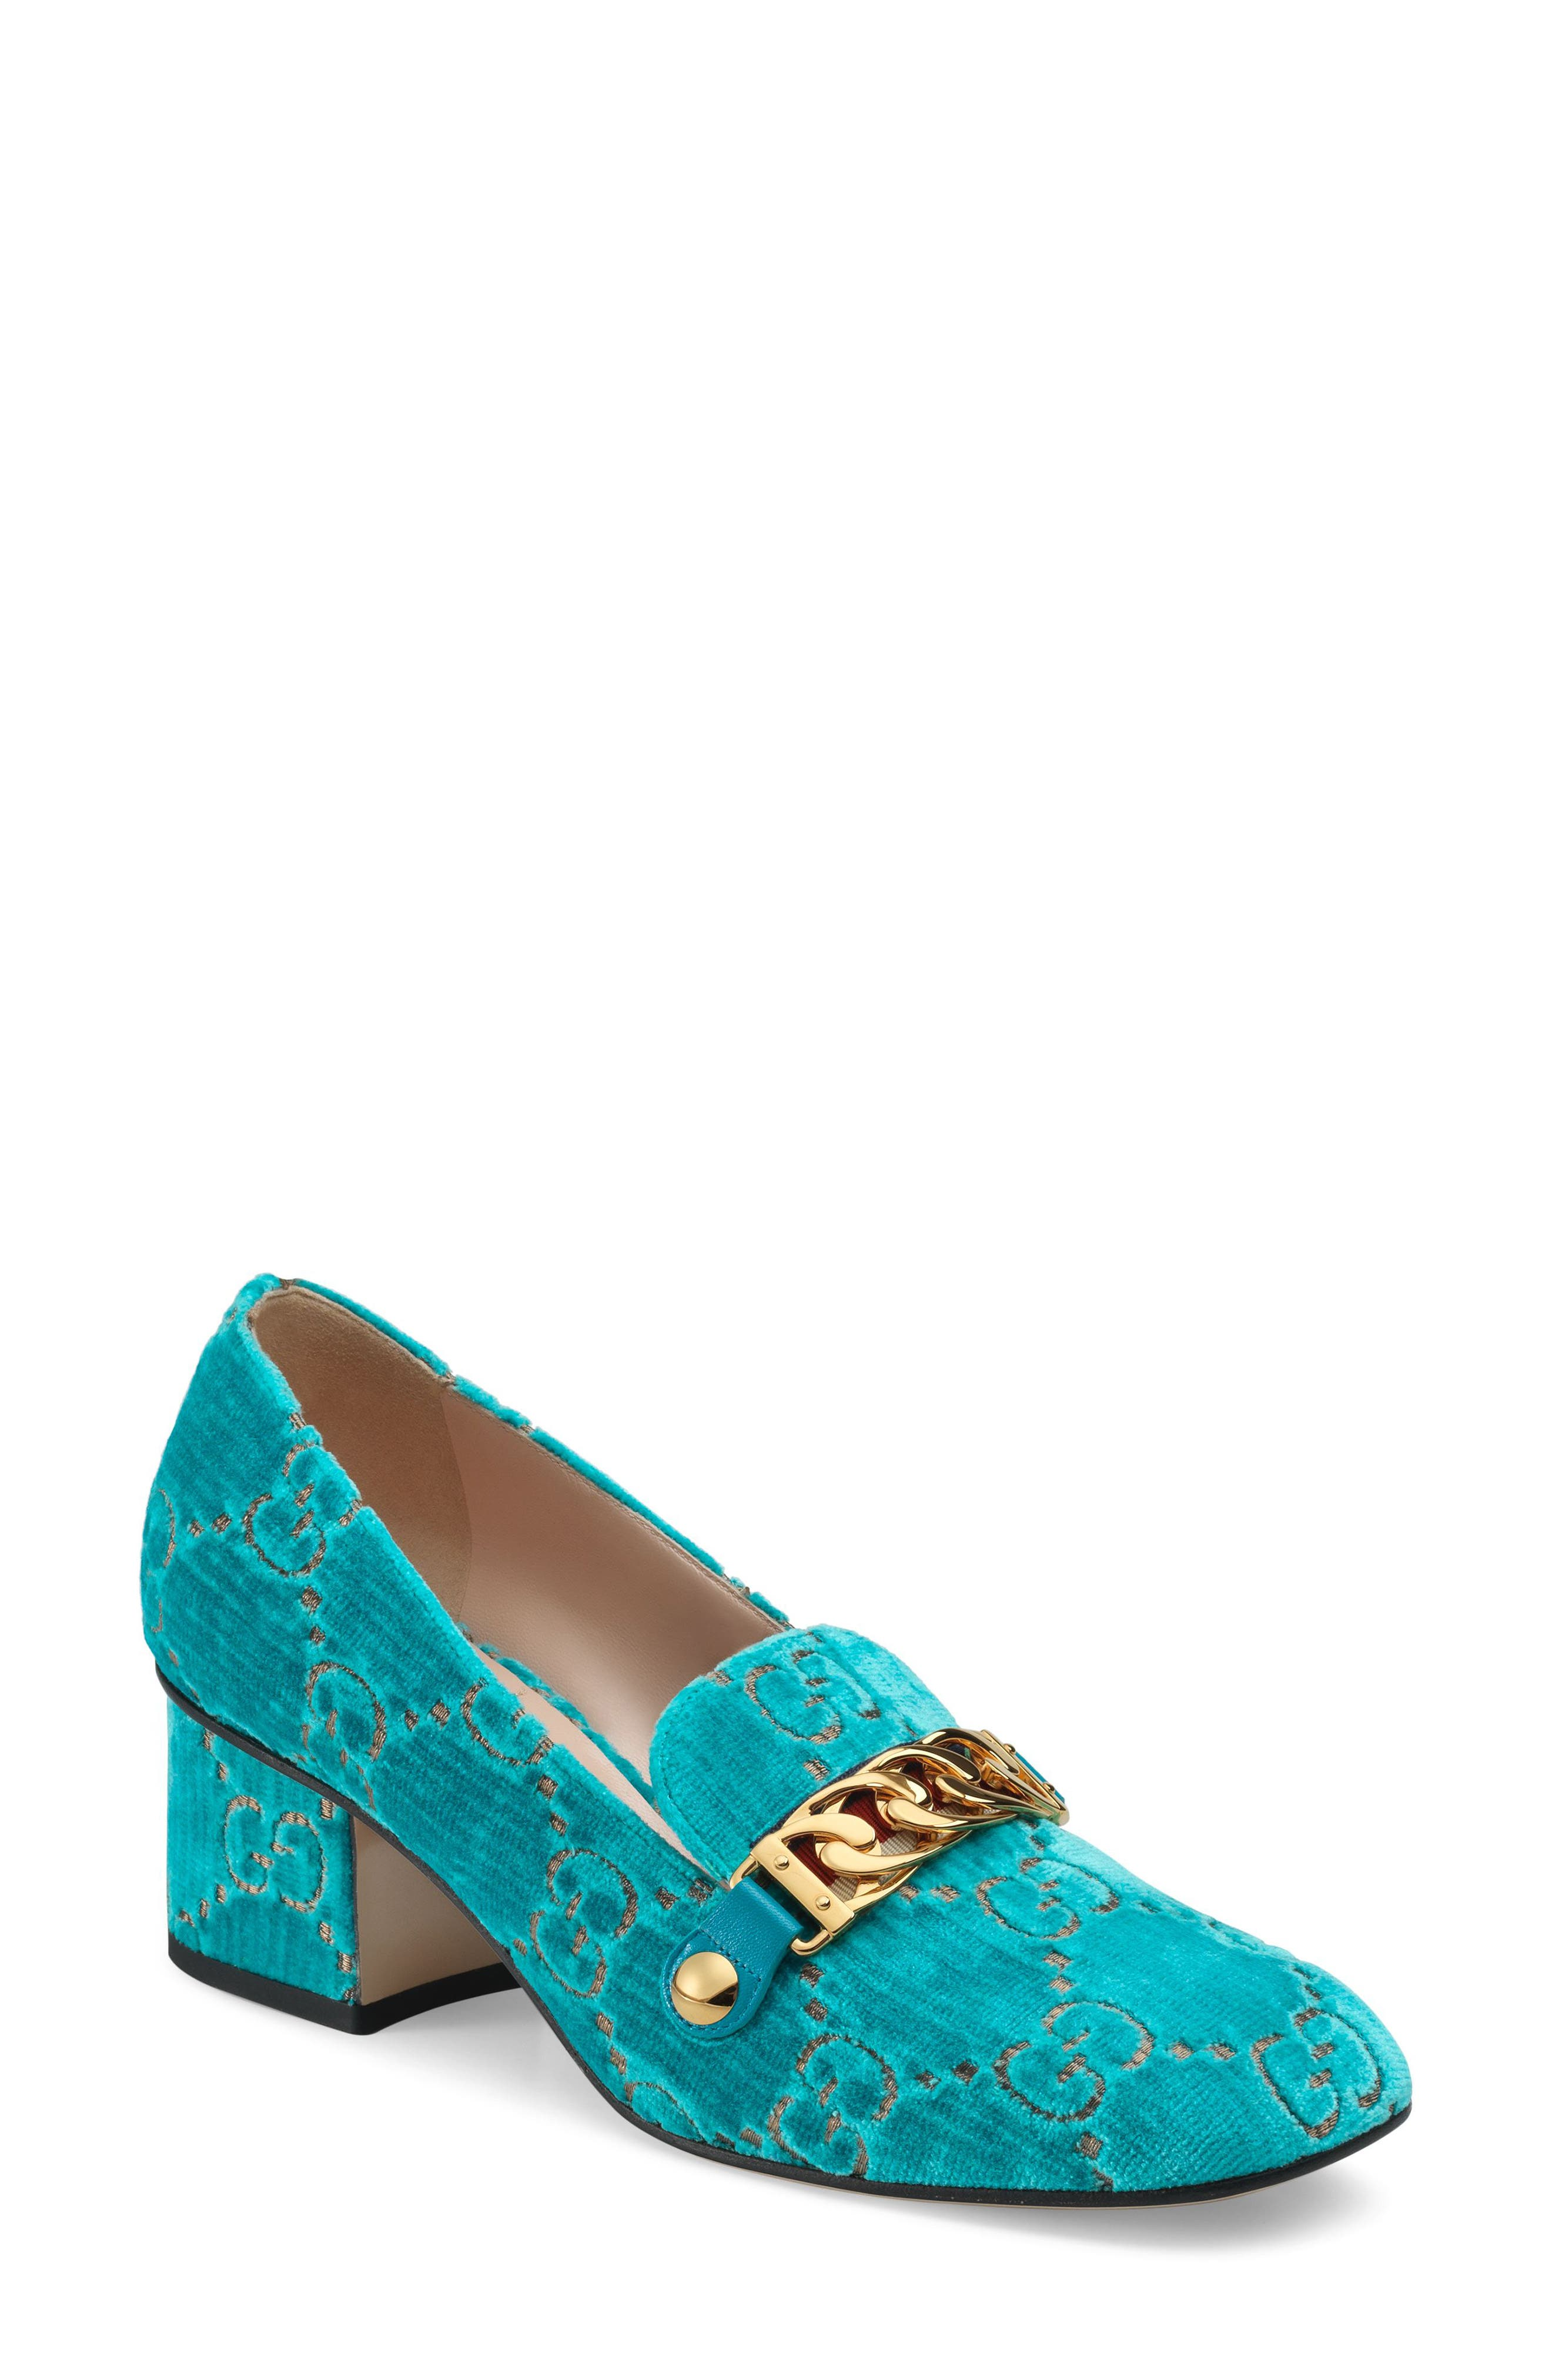 GUCCI Sylvie Loafer Pump, Main, color, TURQUOISE